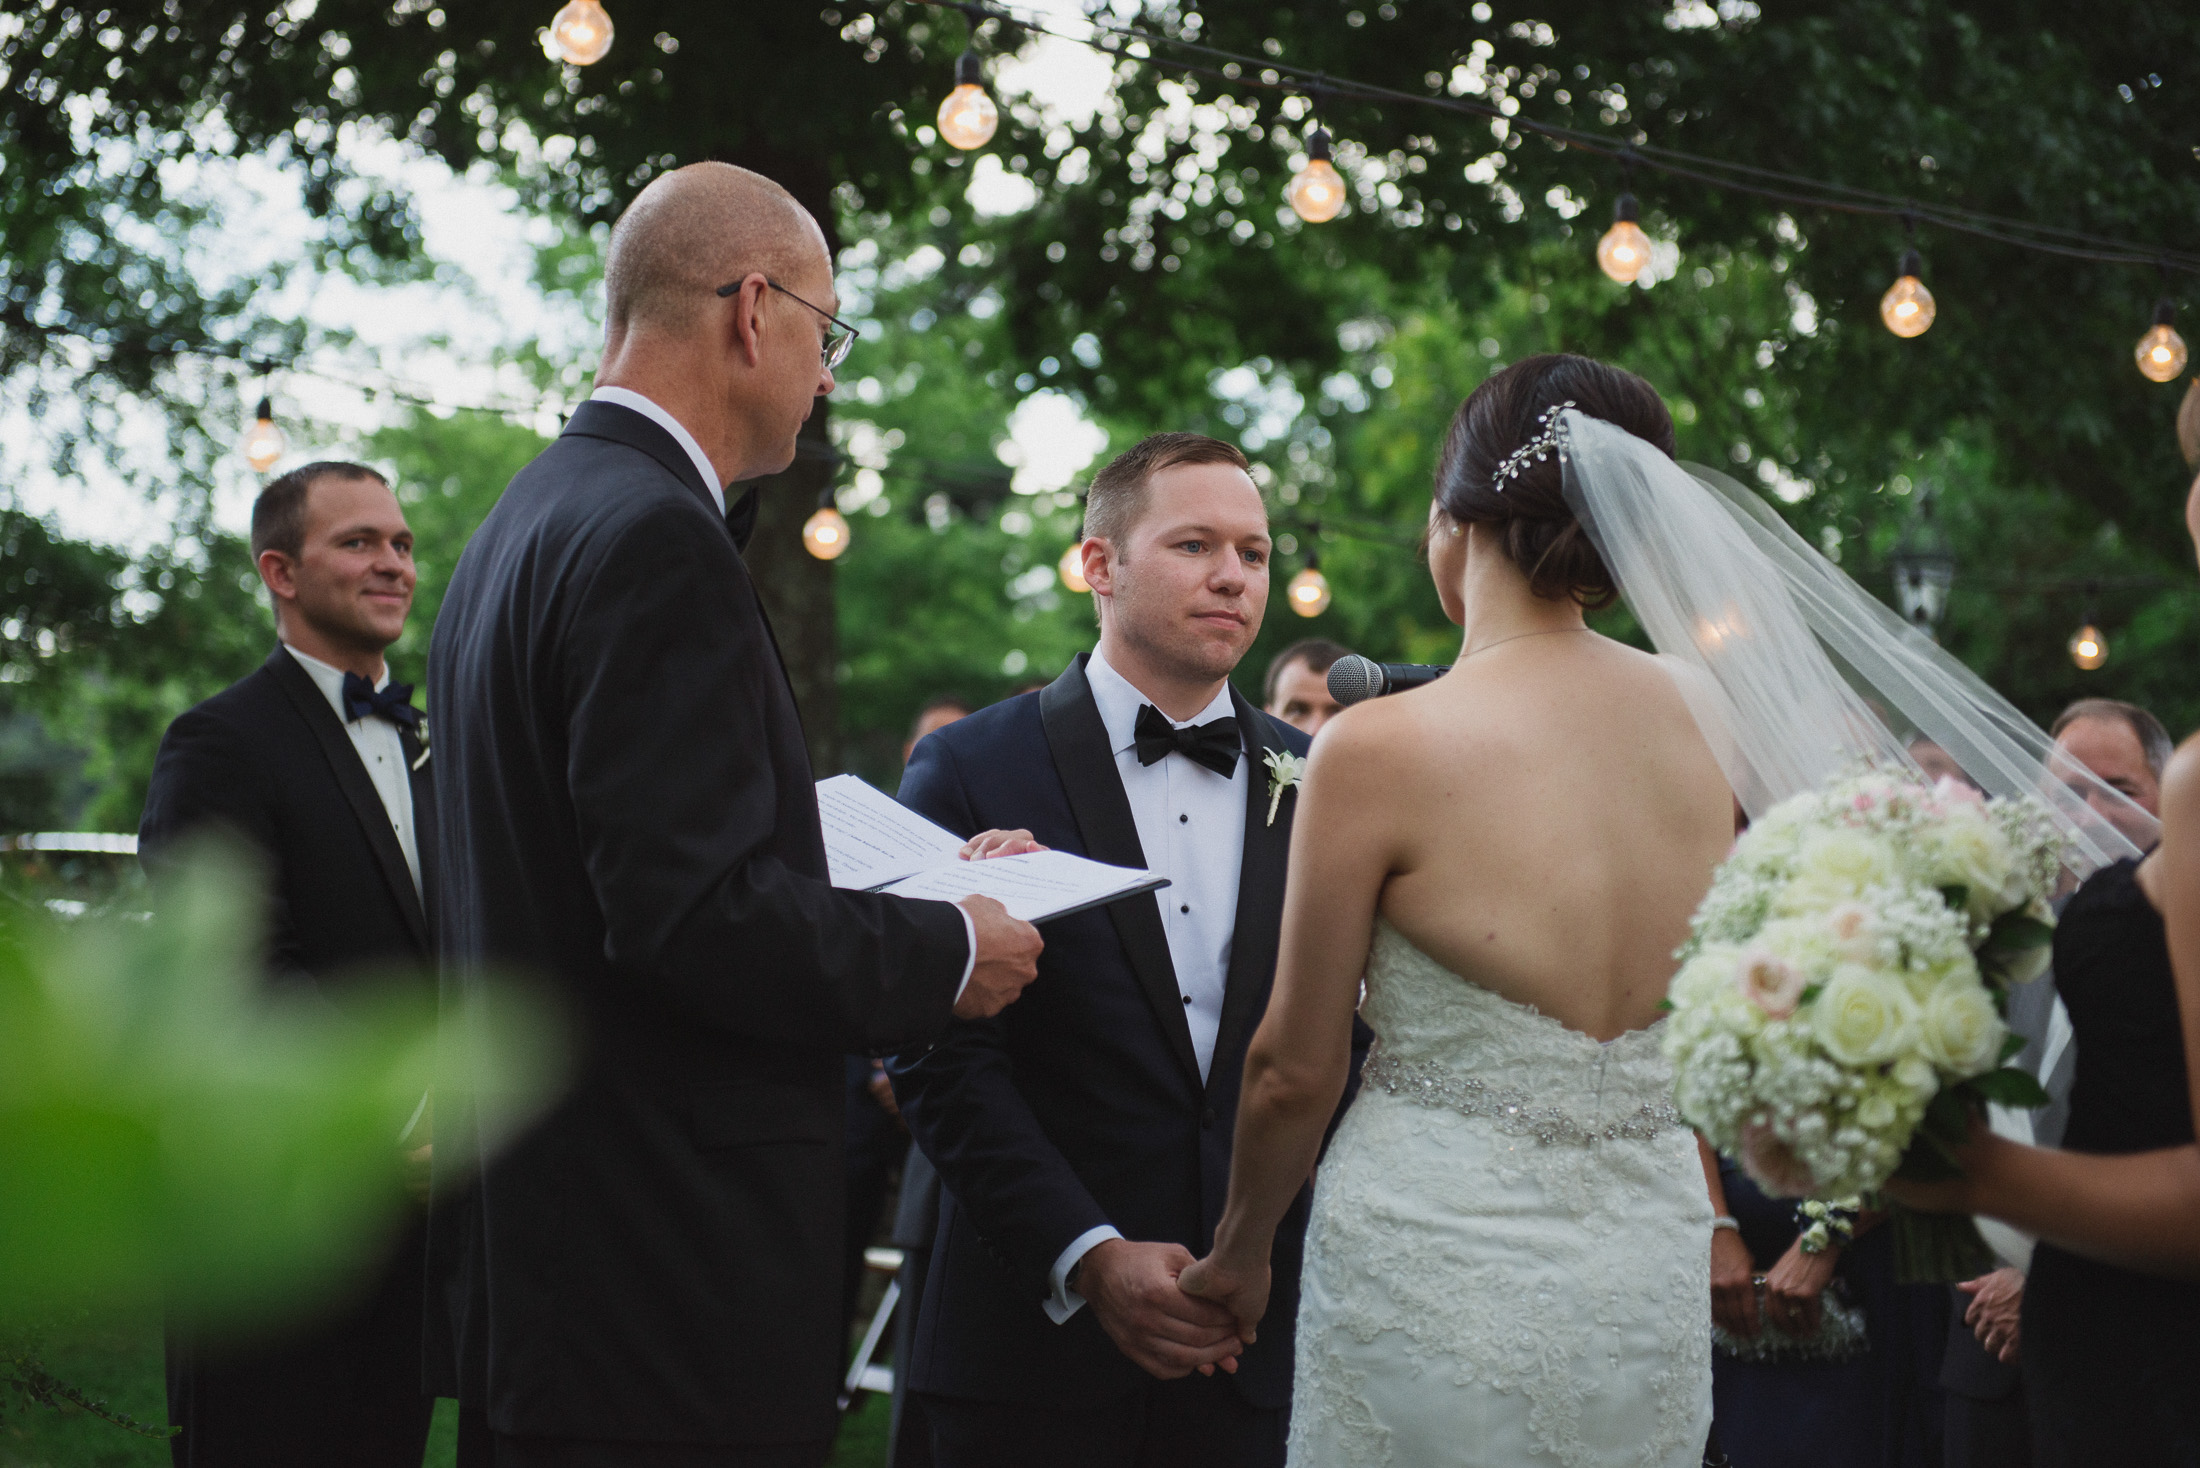 NH Wedding Photographer: ceremony with lights